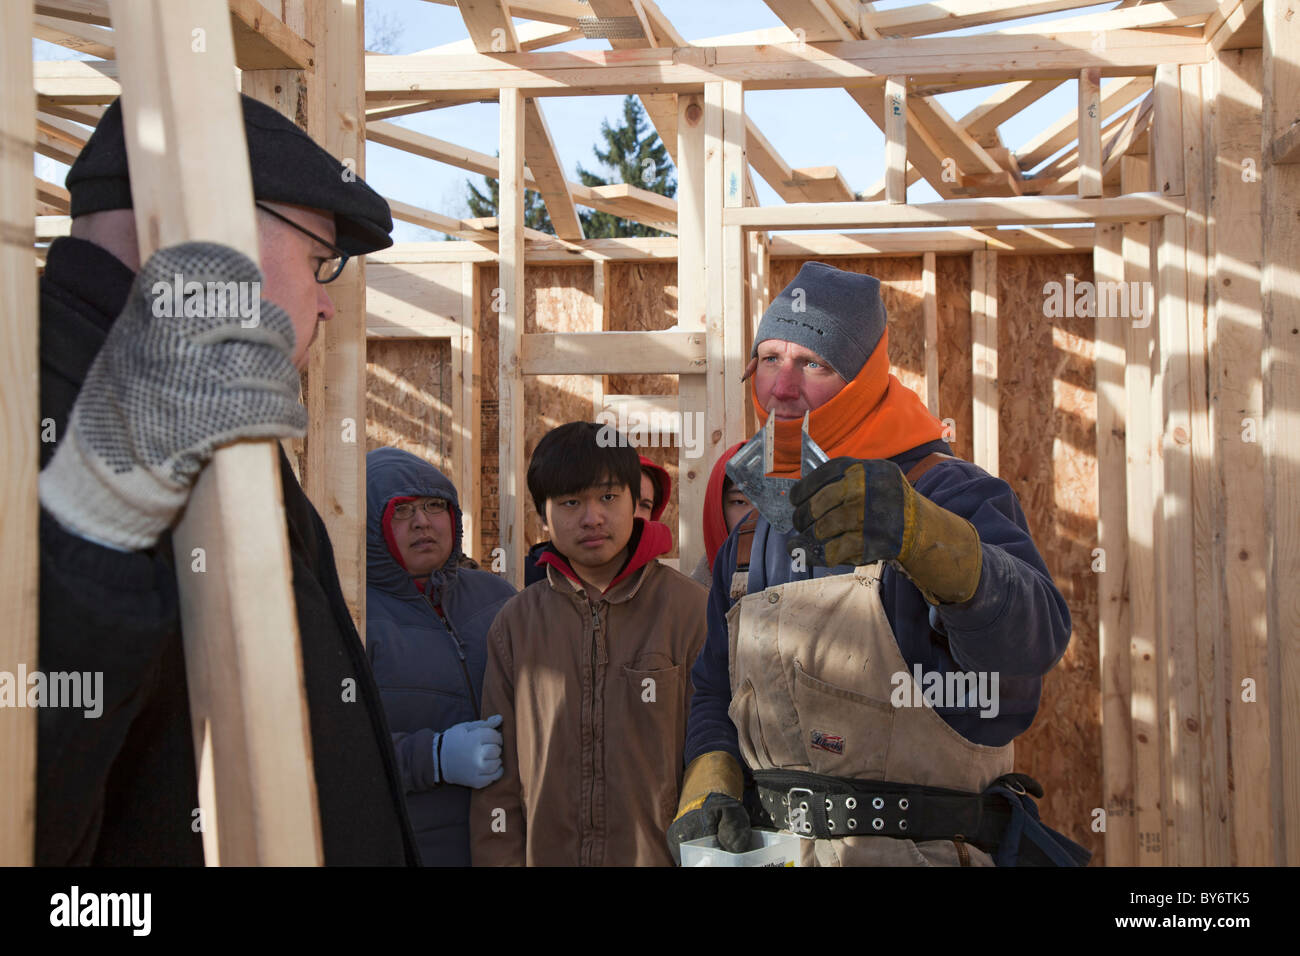 College students help build Habitat for Humanity home on